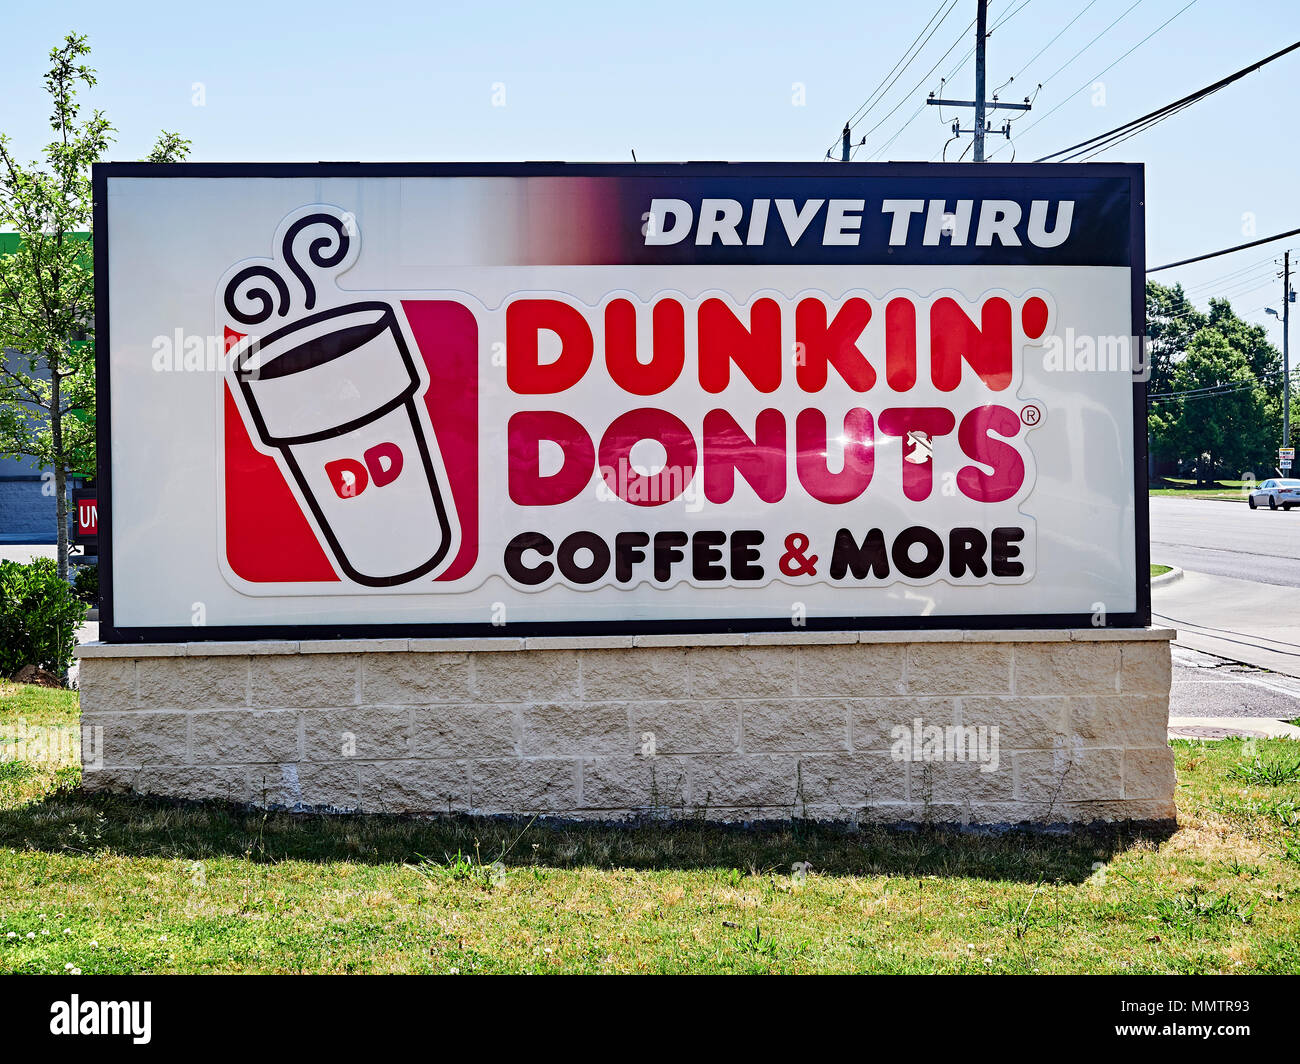 Dunkin Donuts fast food restaurant exterior sign with corporate logo. - Stock Image